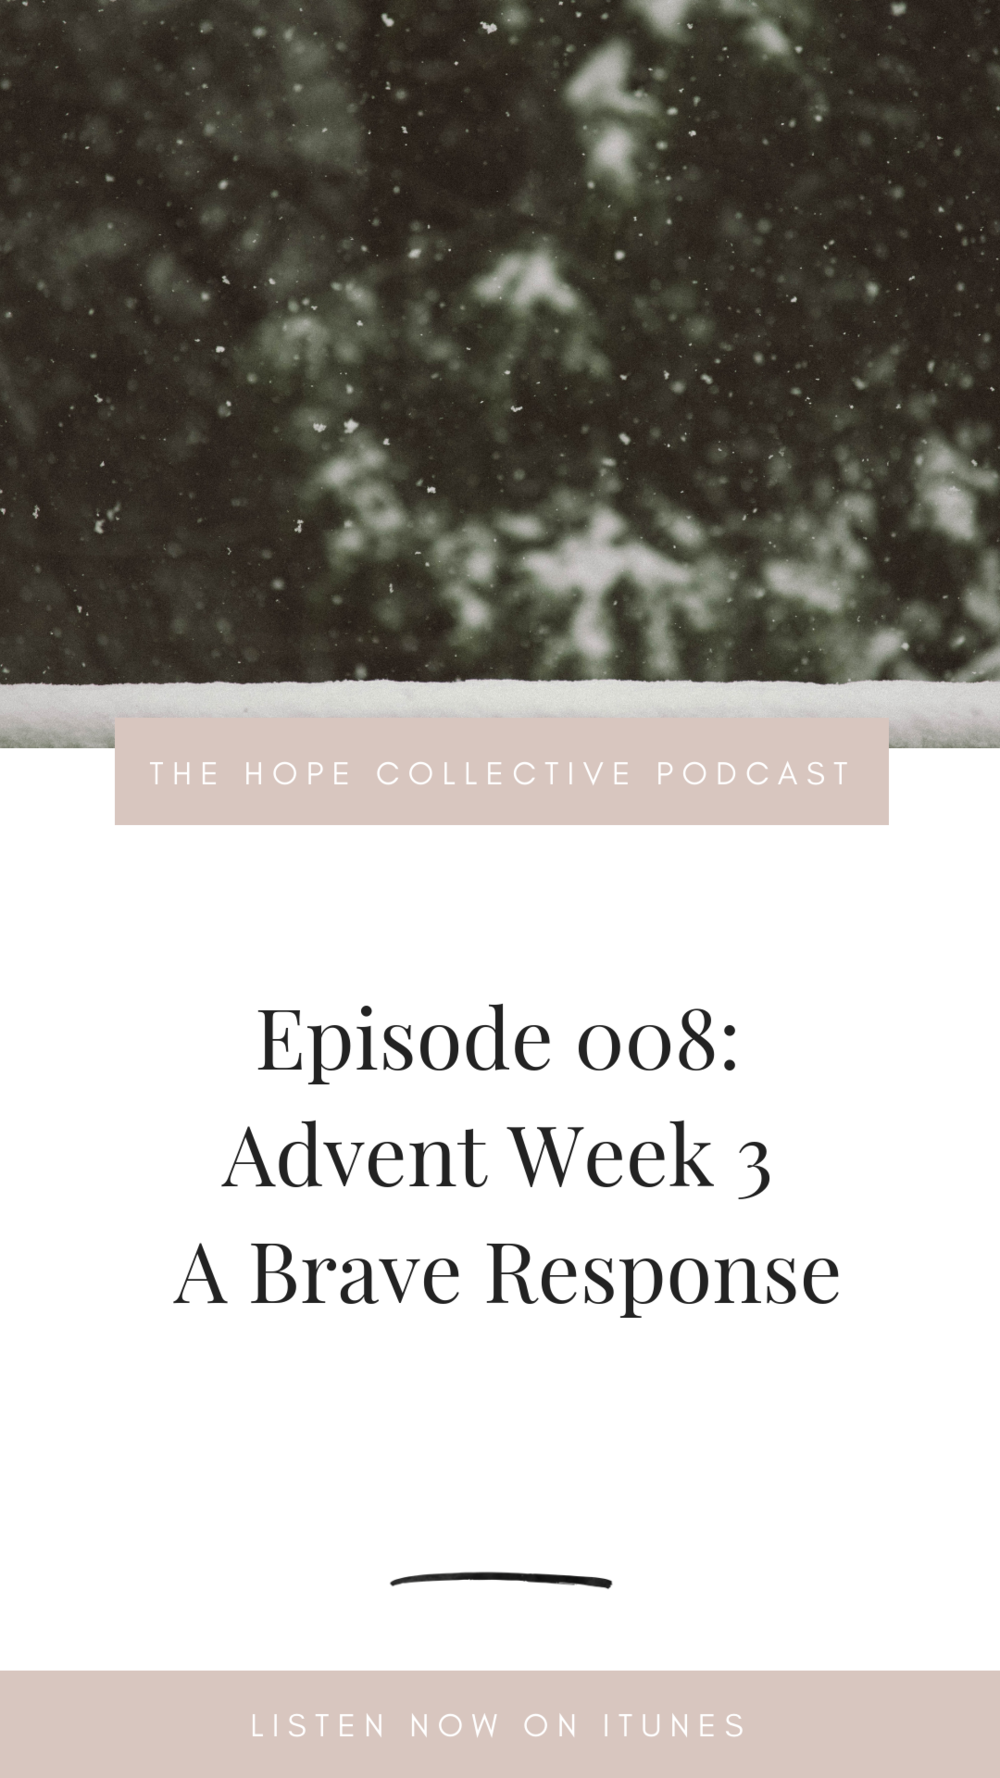 advent week 3 - a brave response - the hope collective podcast